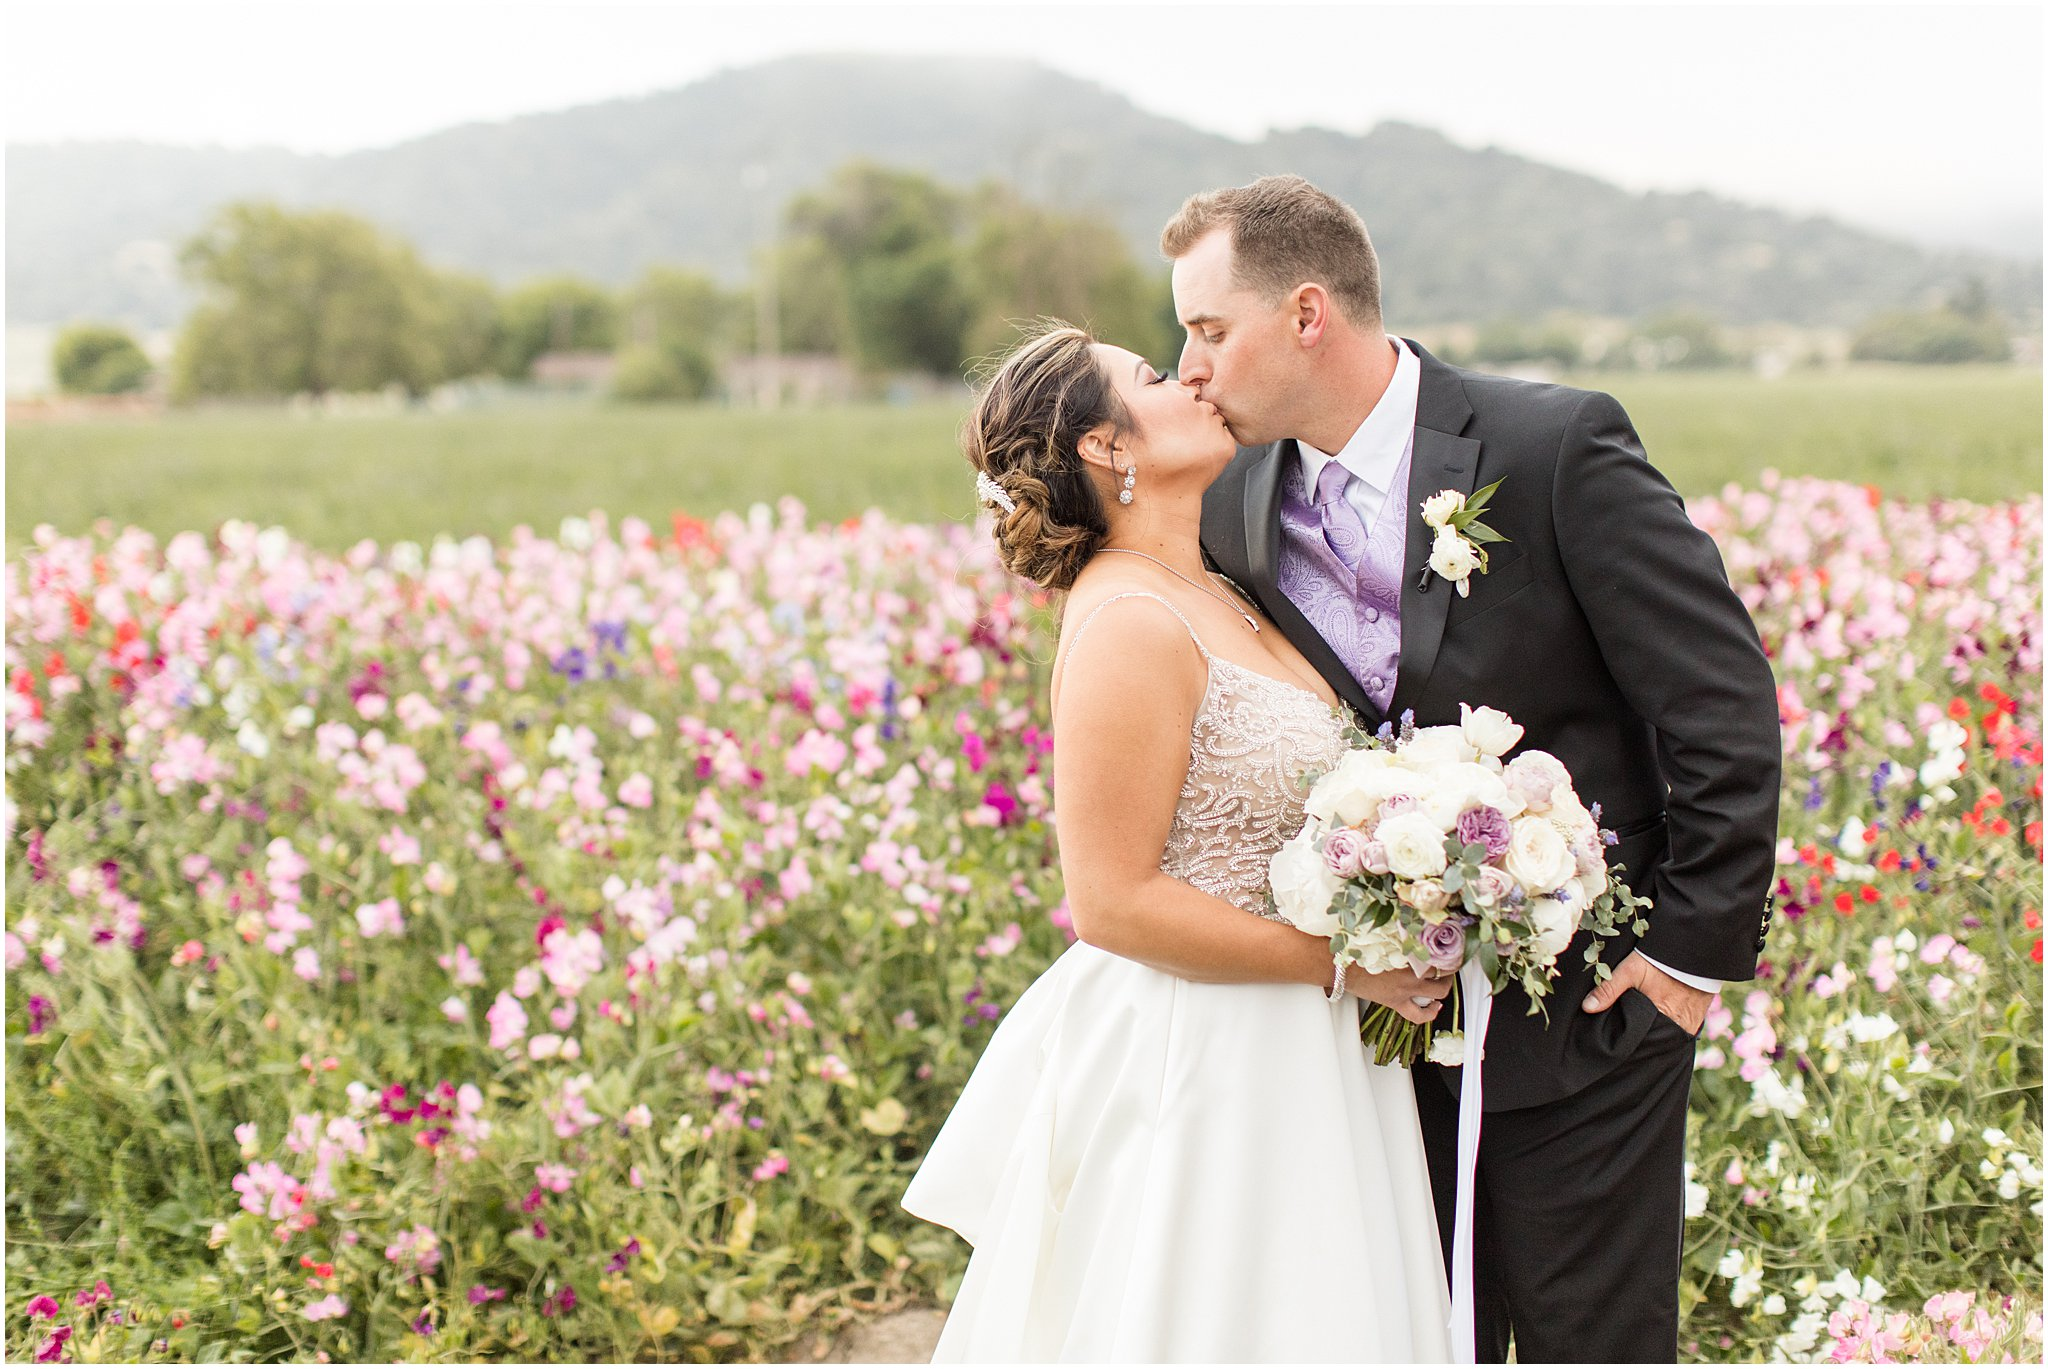 2019 wedding san juan bautista hacienda de leal vineyards bay area wedding photographer_0074.jpg